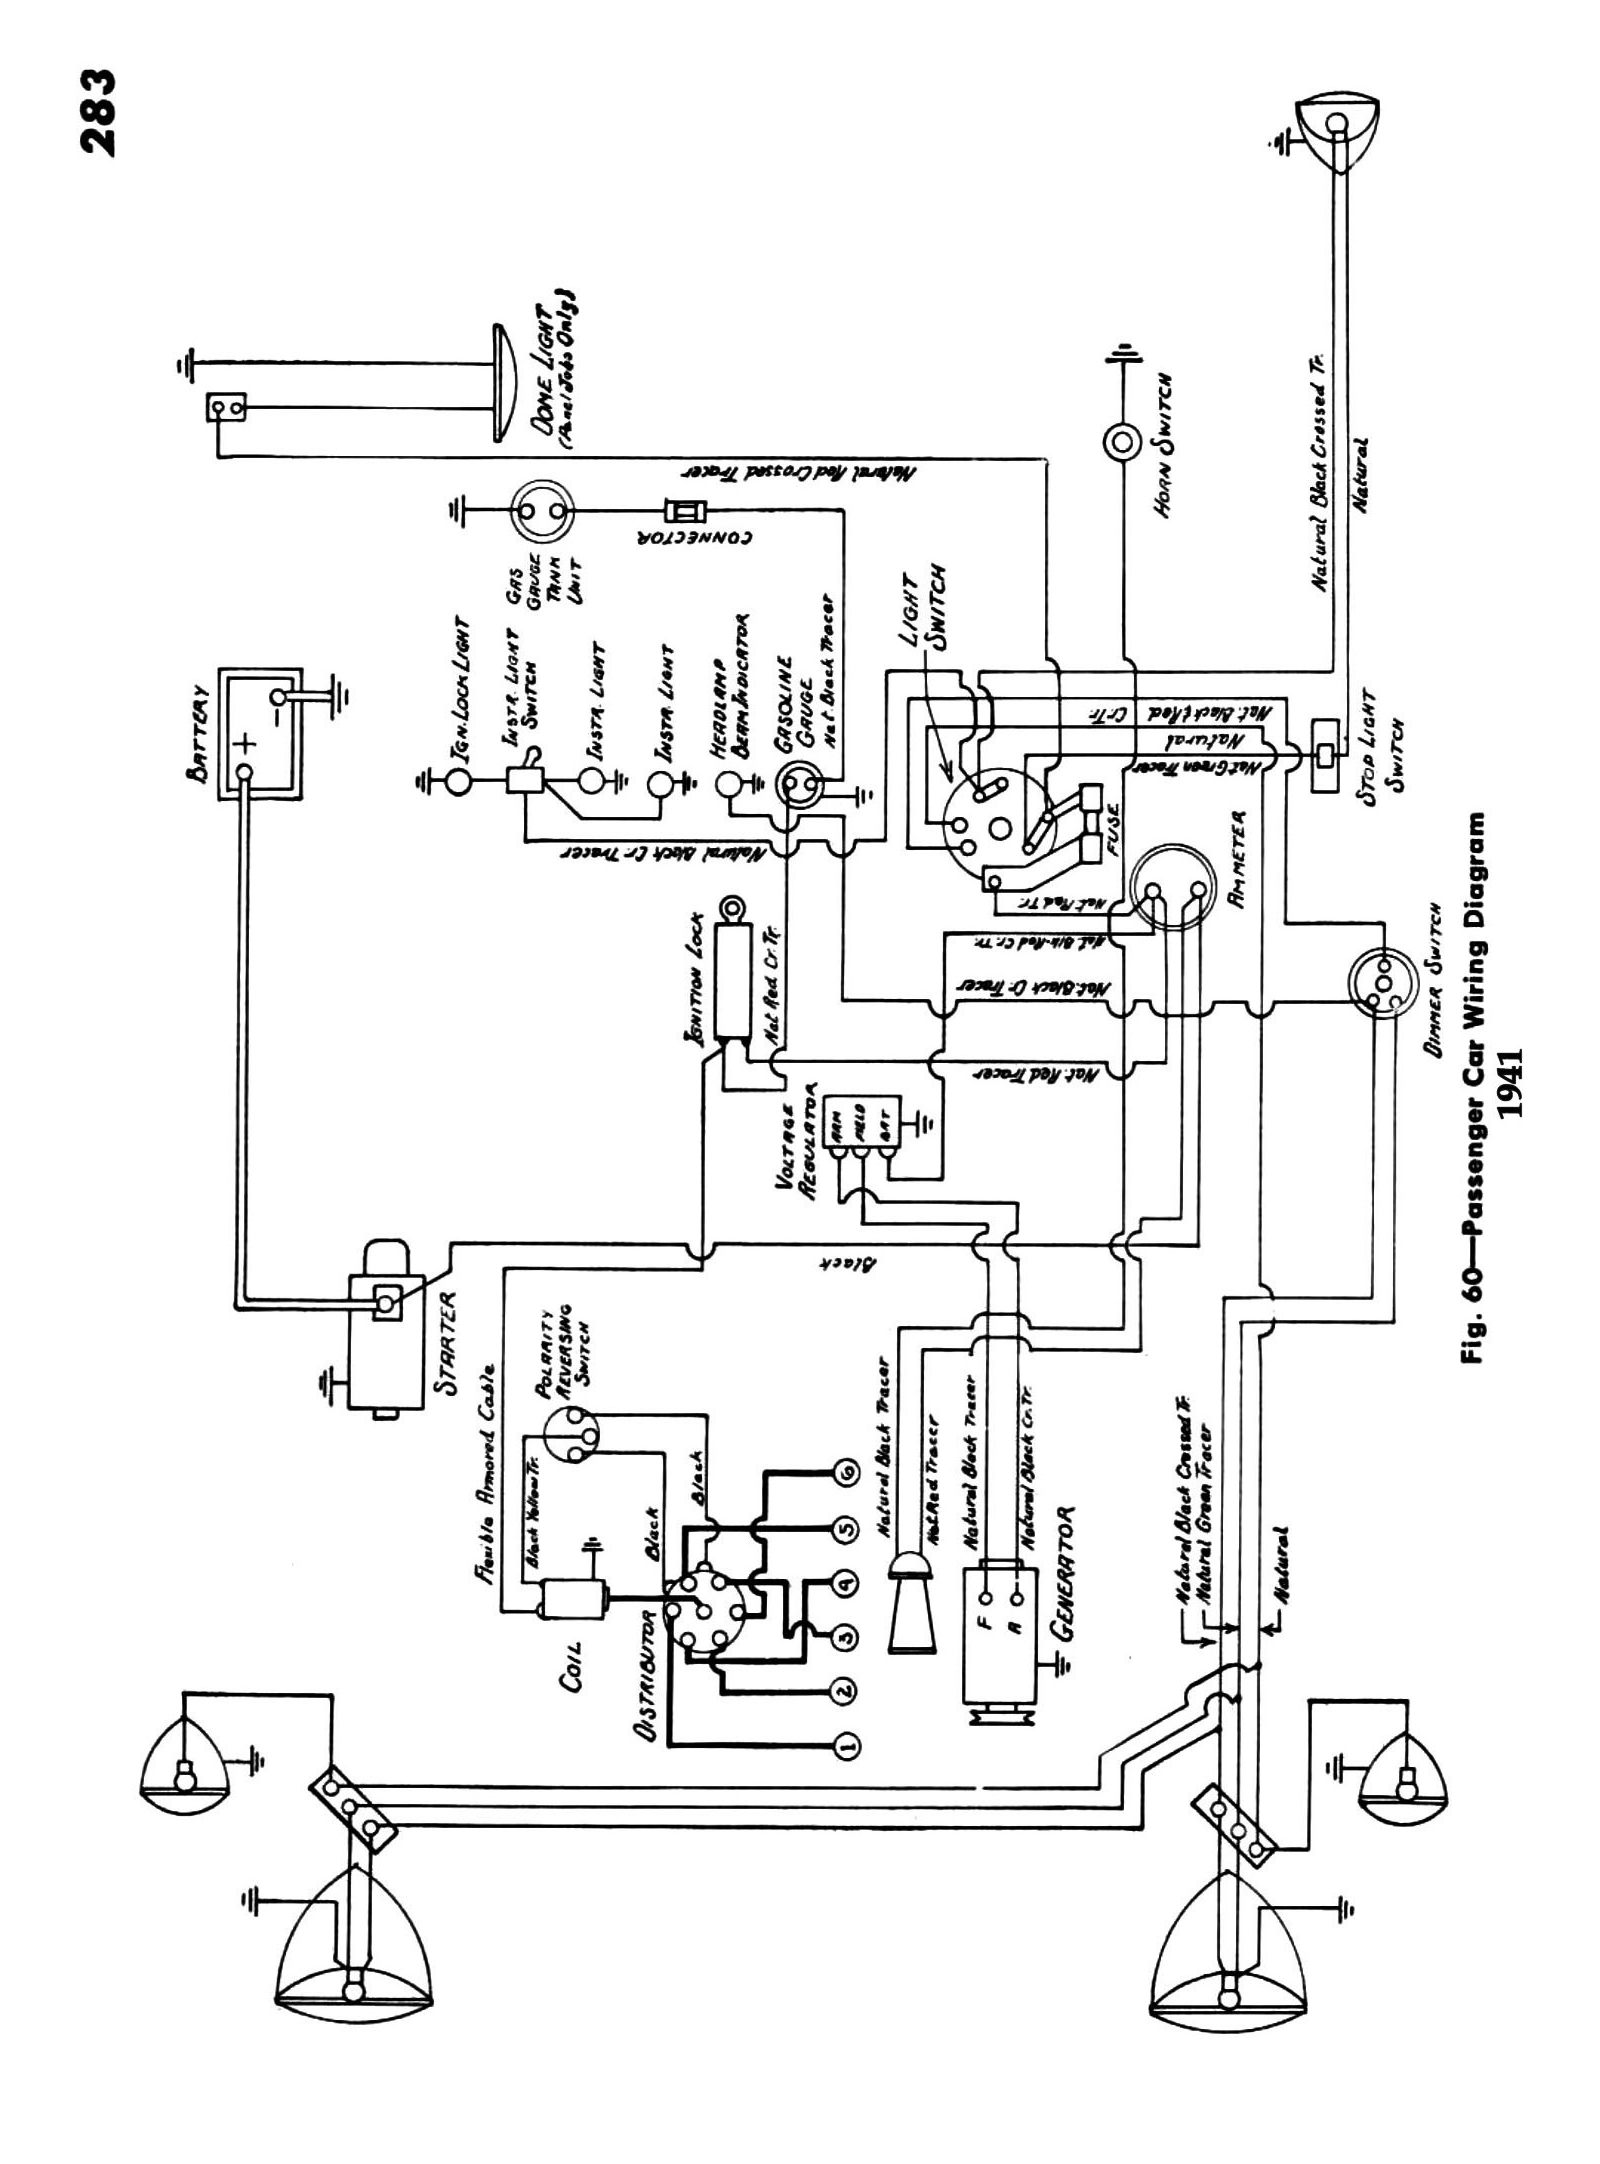 1942 Chevy Truck Wiring Harness Complete Diagrams 1987 S10 Diagram Rh Oldcarmanualproject Com Ez 1949 Deluxe